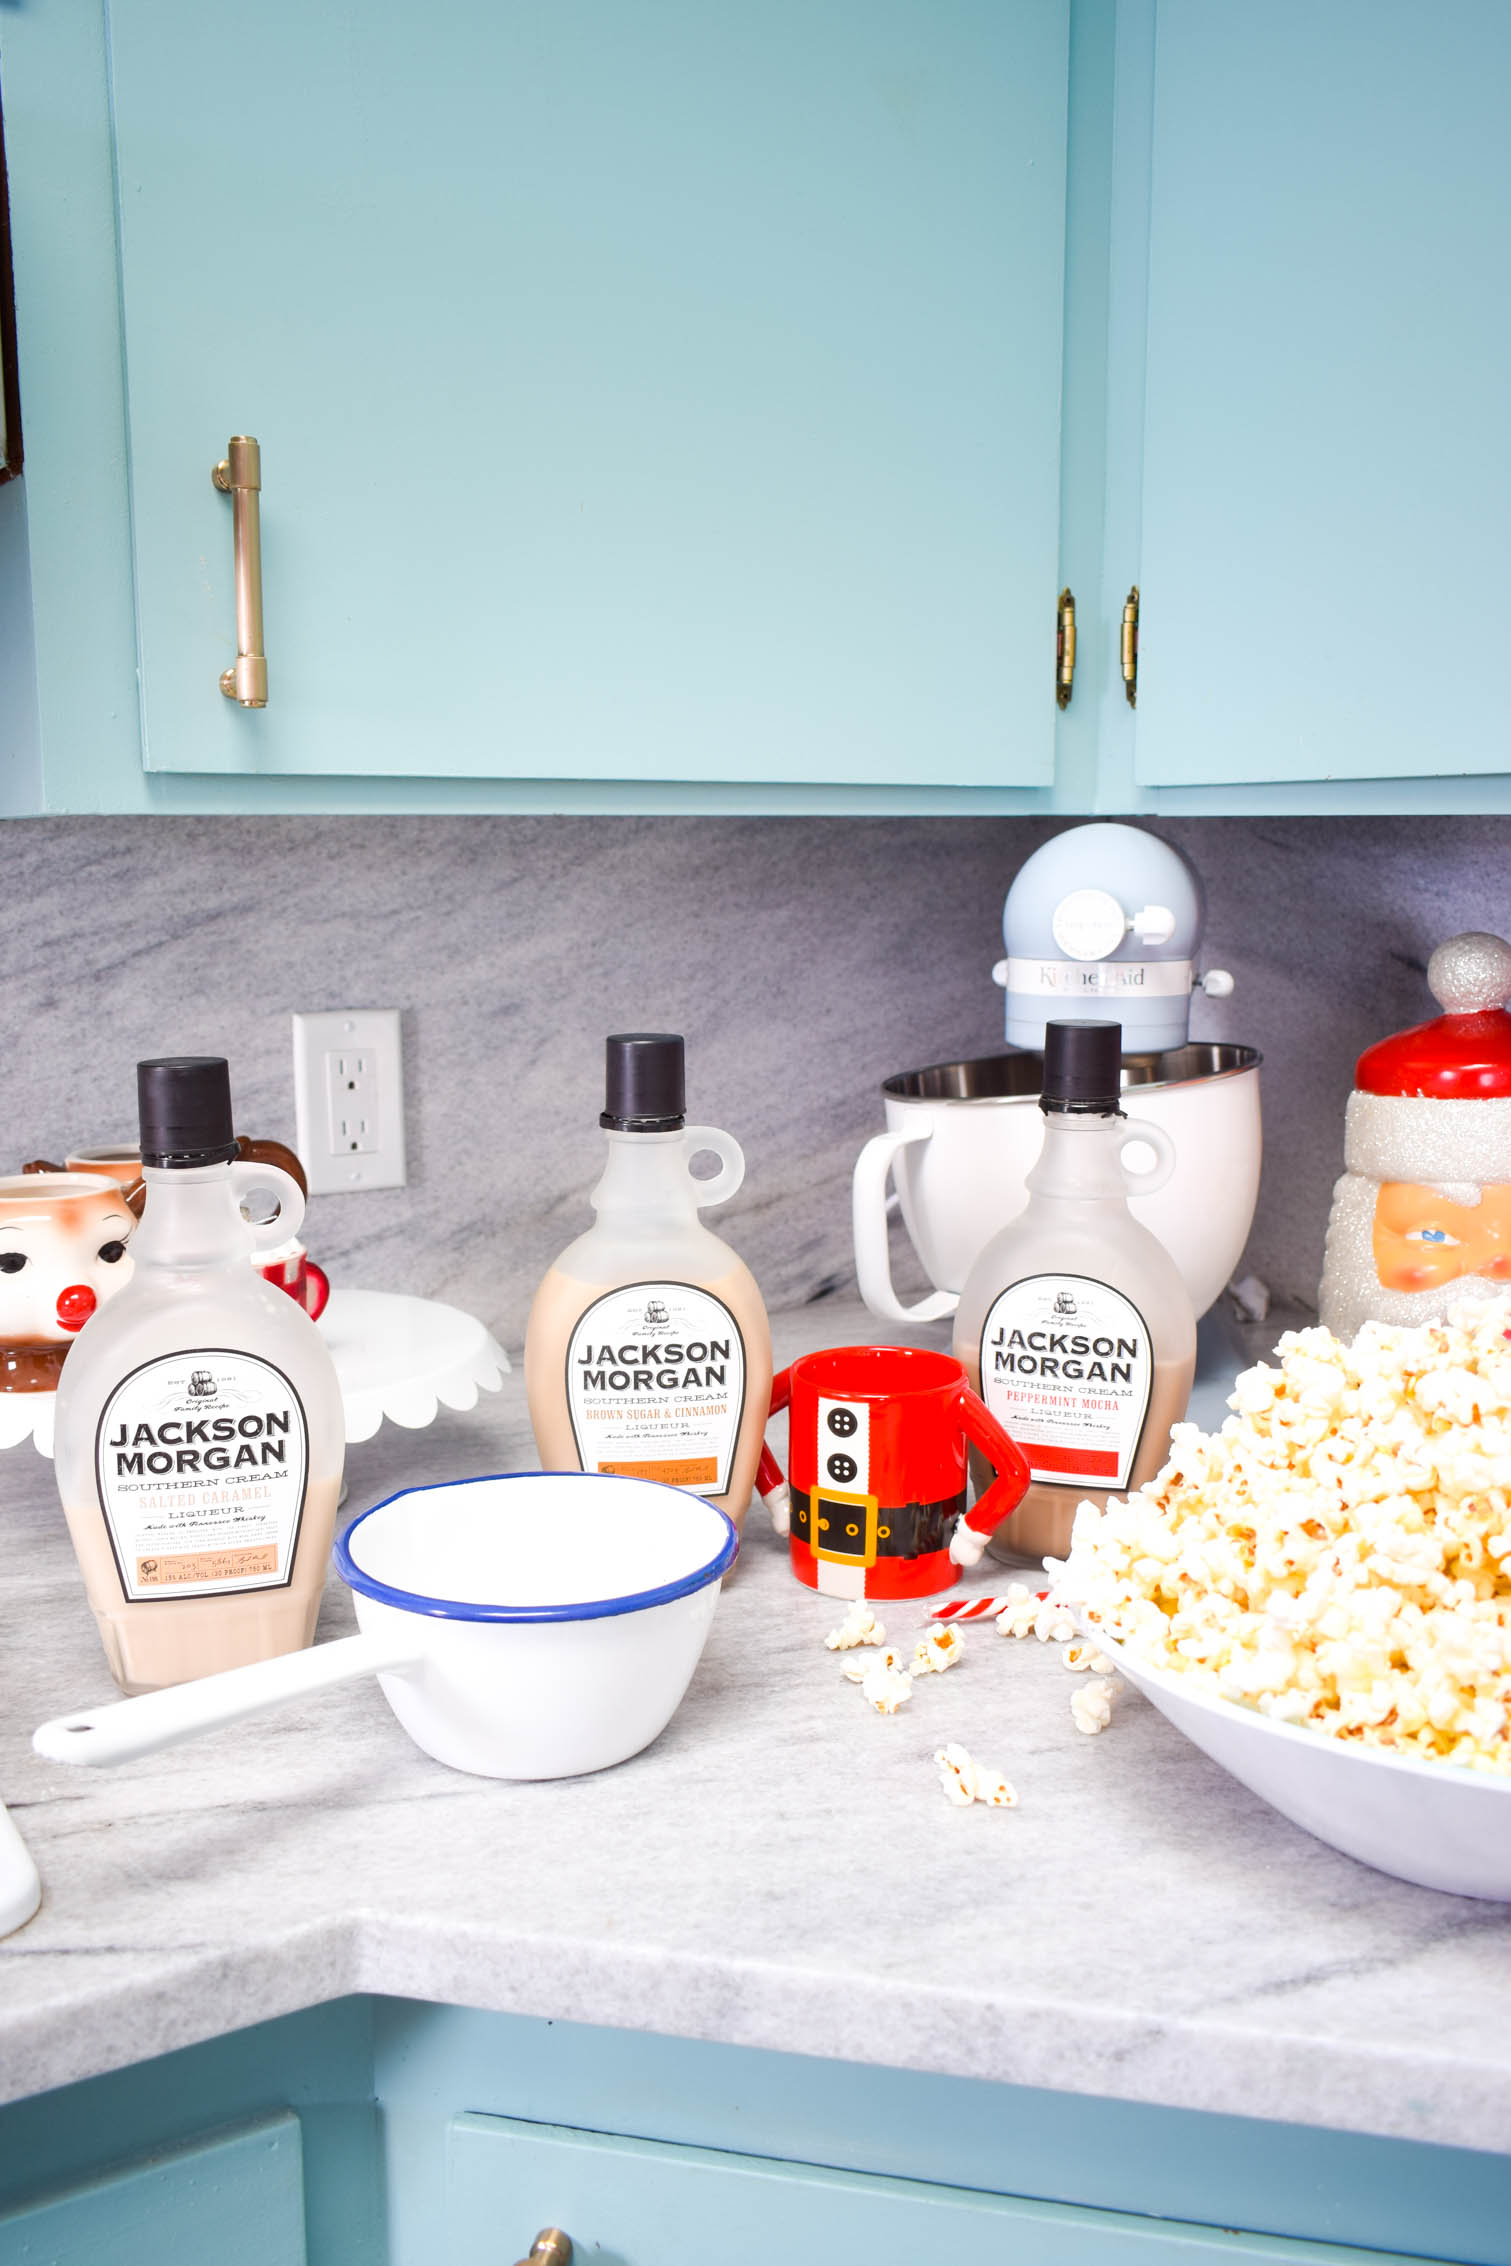 I'm a huge fan of the tasty gift, and I wanted to put a fresh twist on the food gifts we see exchange, with my Whiskey Cream Caramel Popcorn Recipe.